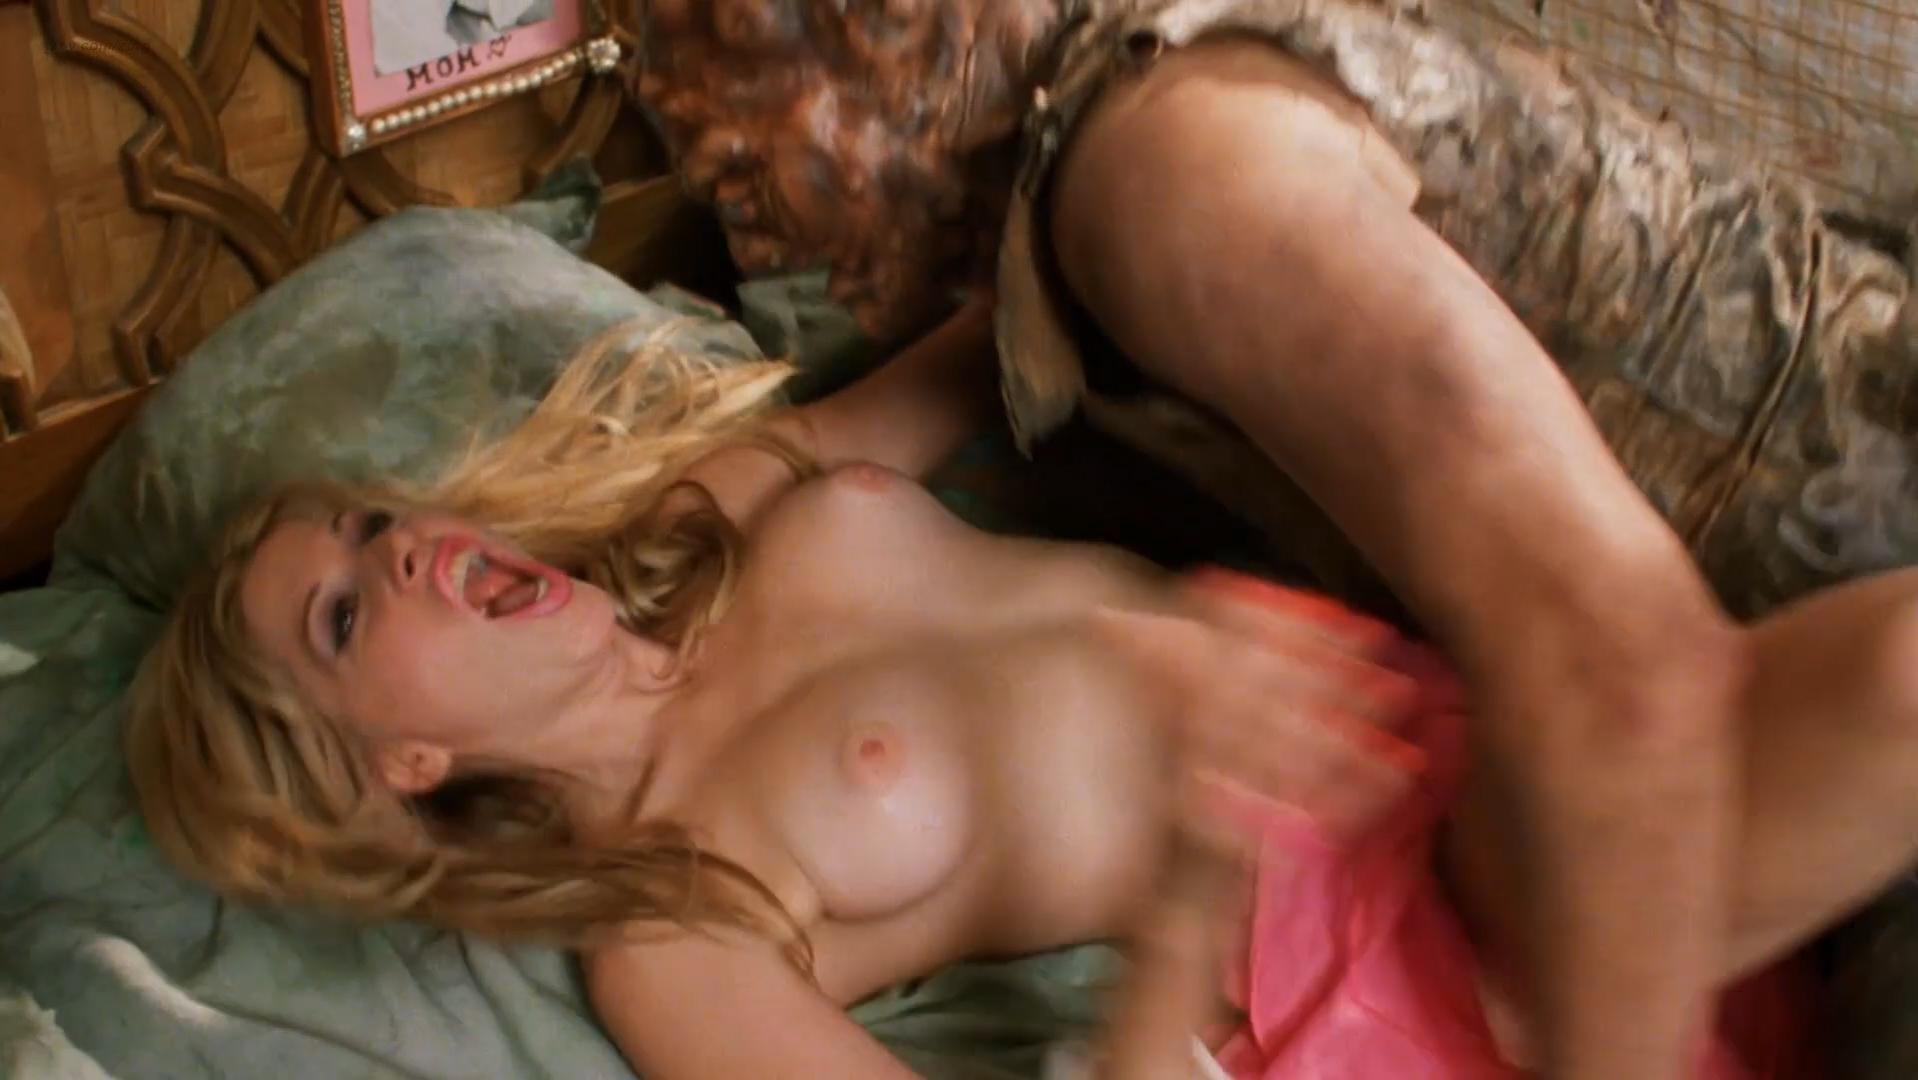 Amanda hillwood topless - 1 part 8